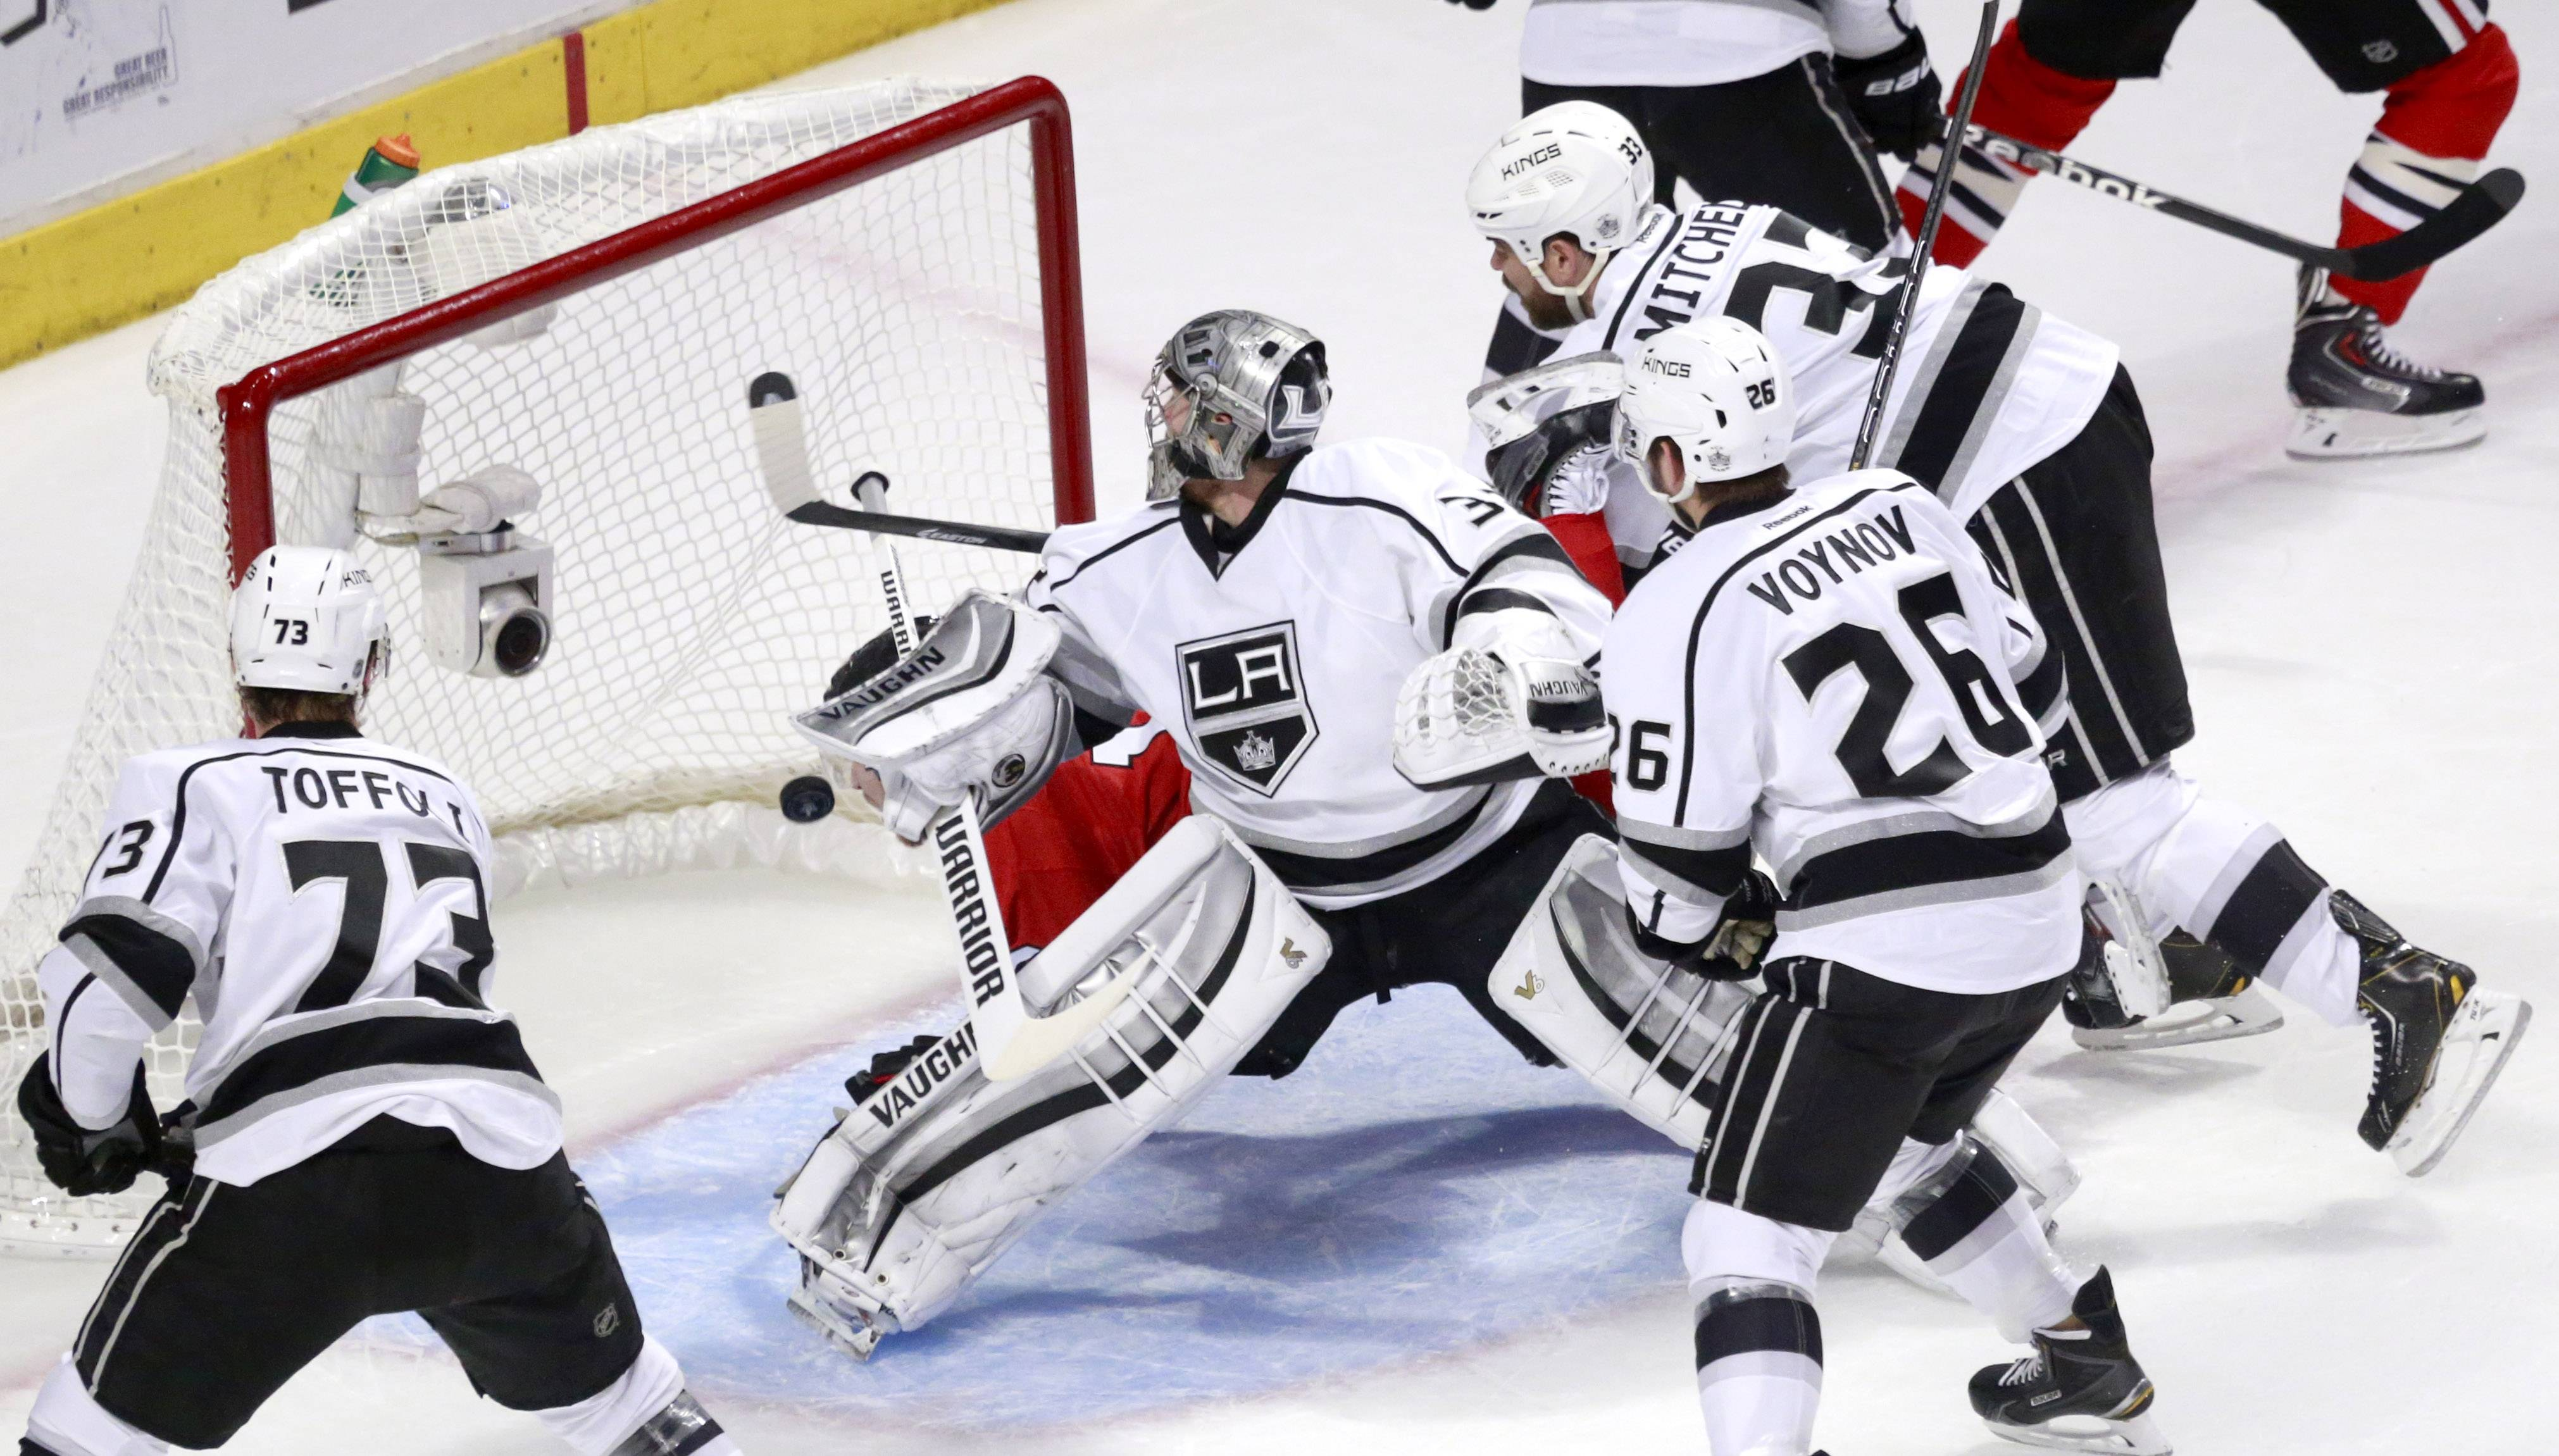 Chicago Blackhawks center Peter Regin, is crosschecked into the goal by Los Angeles Kings defenseman Willie Mitchell (33) past Los Jonathan Quick (32) as Tyler Toffoli (73) and Slava Voynov watch during the first period of Game 2 of the Western Conference finals in the NHL hockey Stanley Cup playoffs Wednesday, May 21, 2014, in Chicago. The play was reviewed and no goal was allowed.